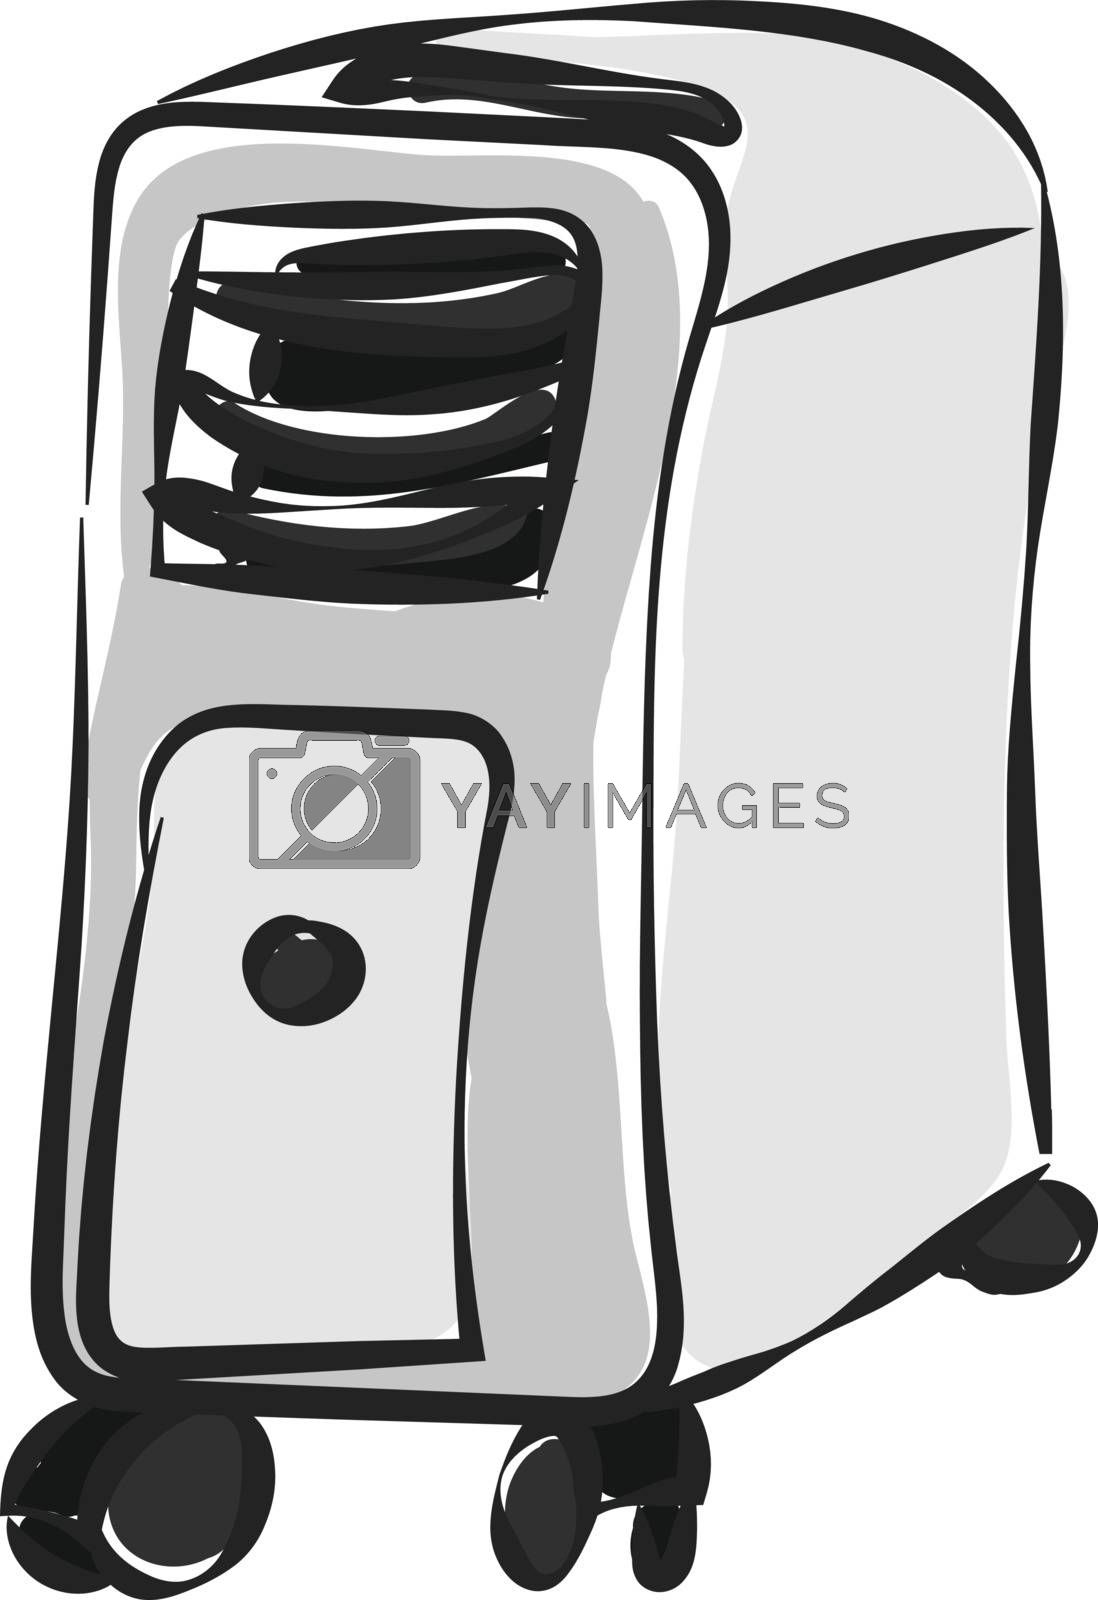 Royalty free image of Cartoon air conditioner/Air cooler (White and grey)  vector or c by Morphart